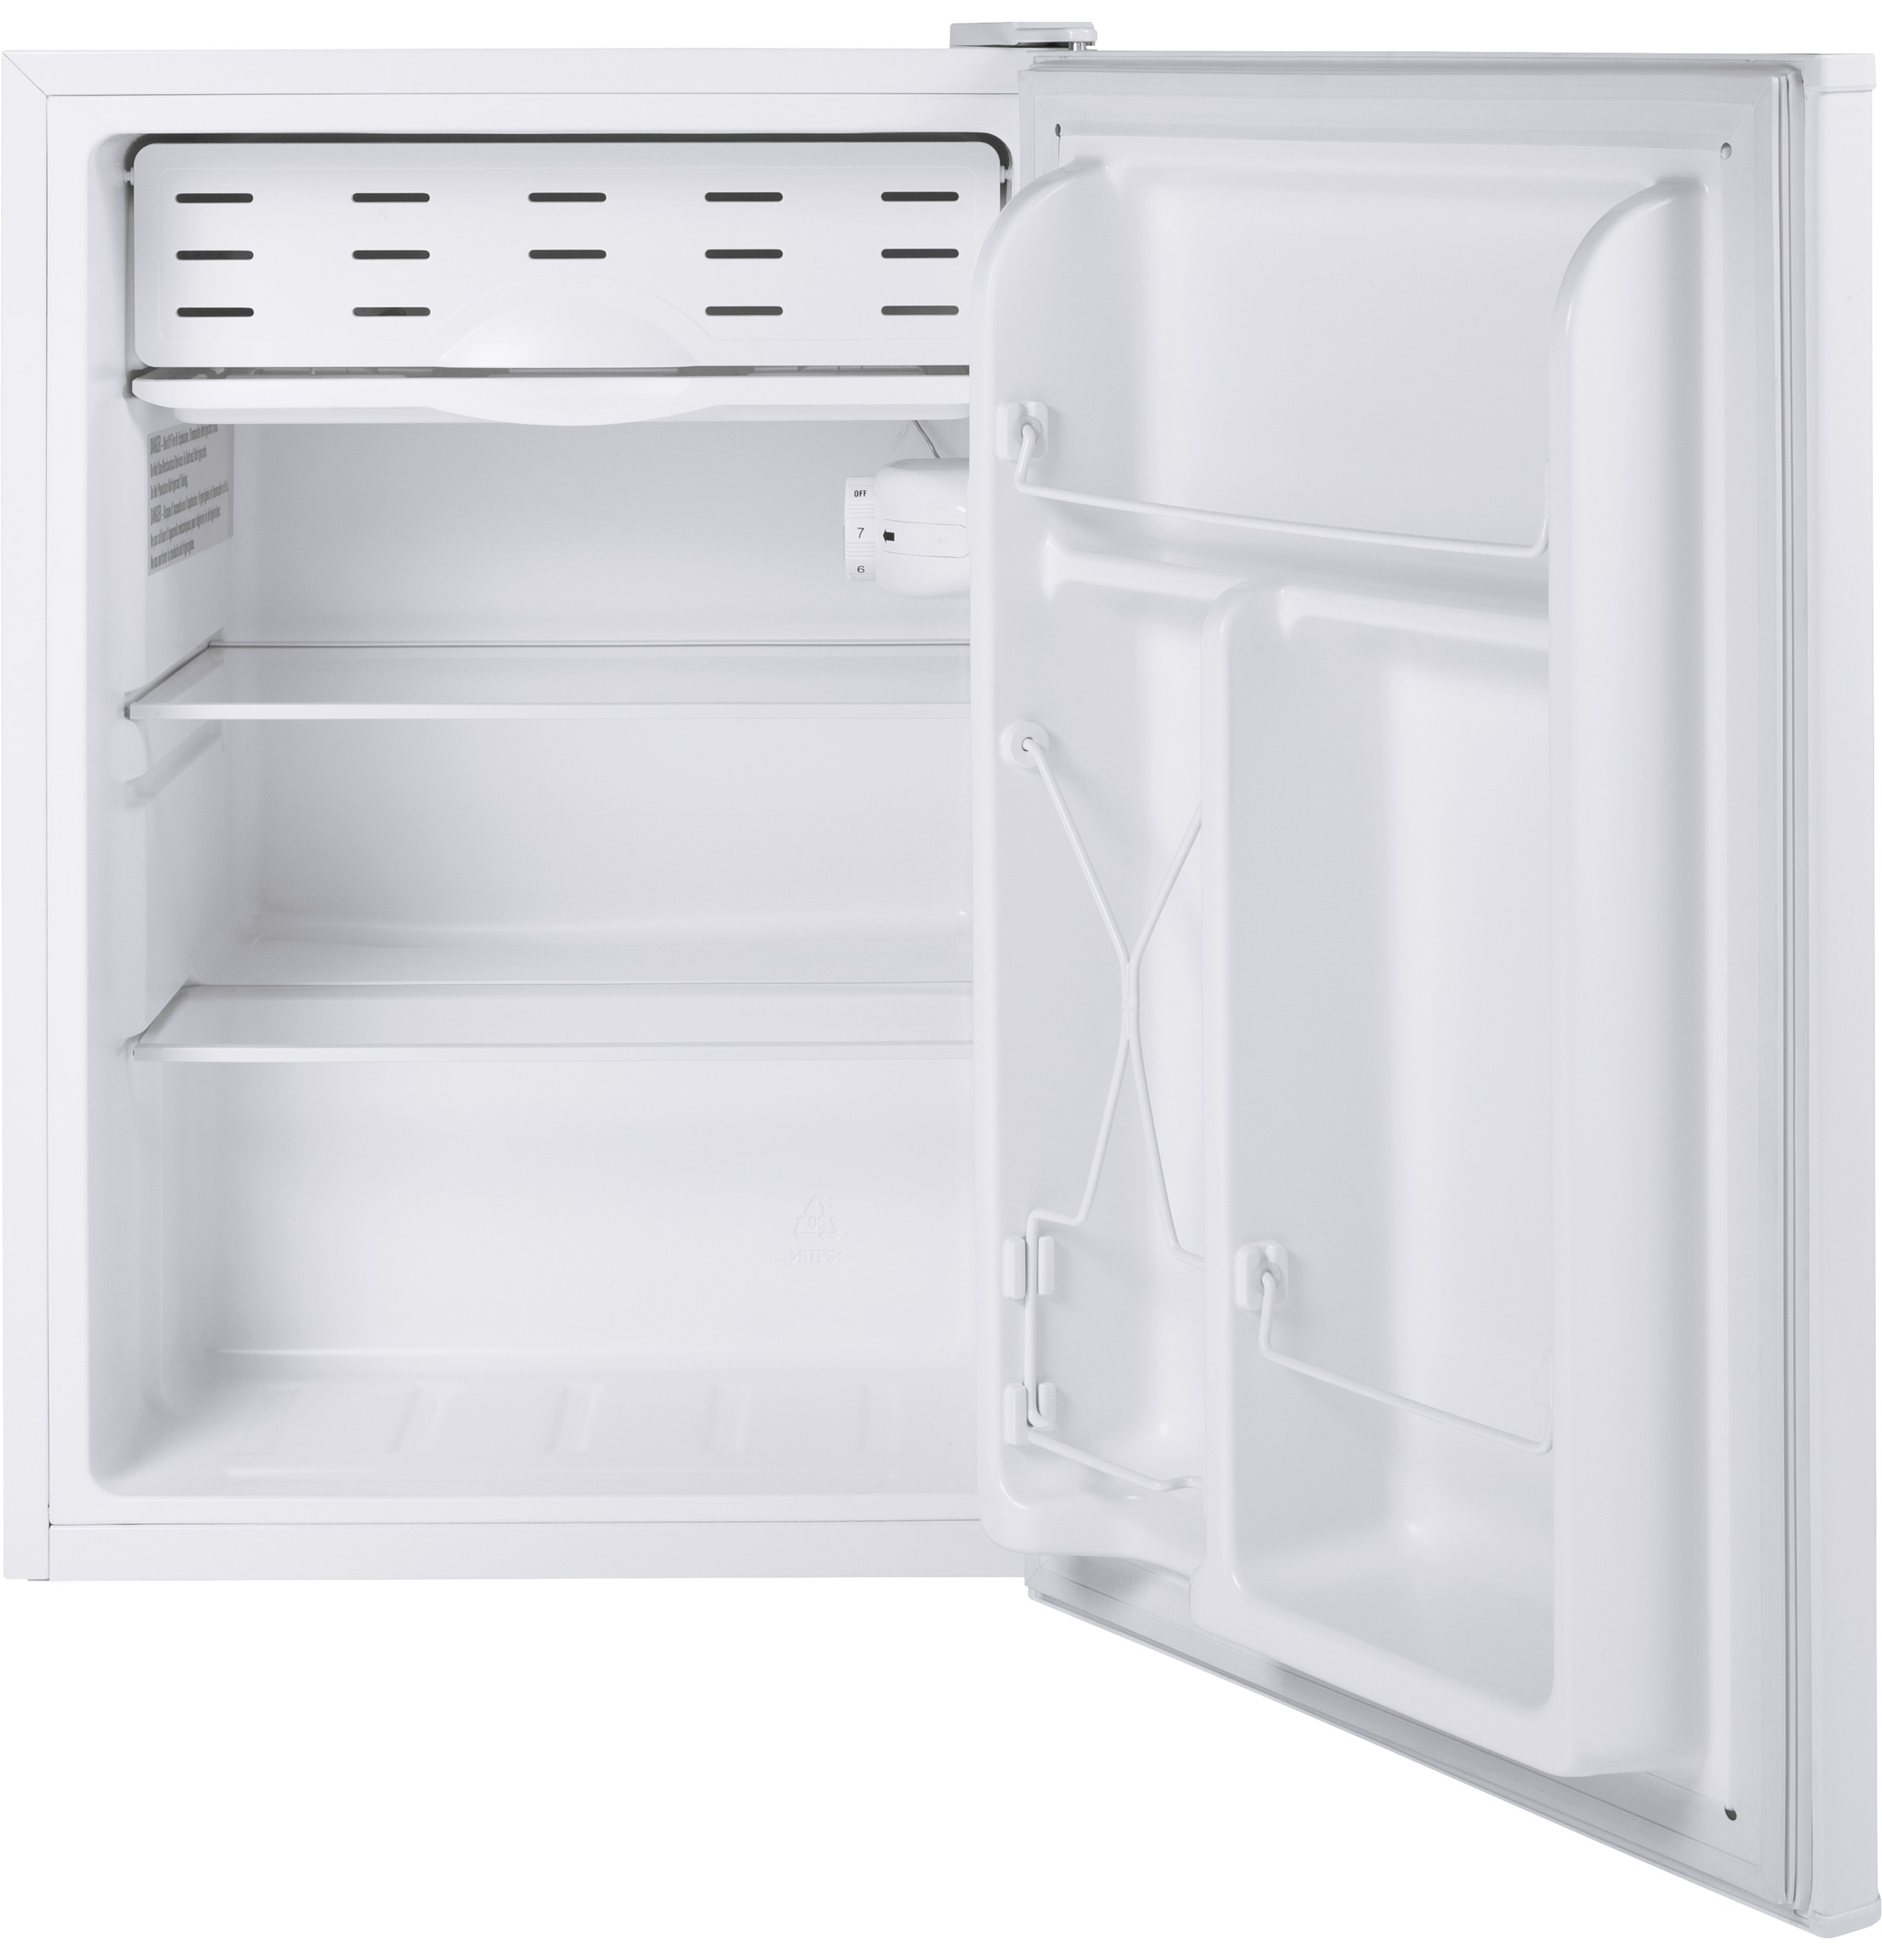 Qhe03ggmww 2 7 Cu Ft Energy Star 174 Qualified Compact